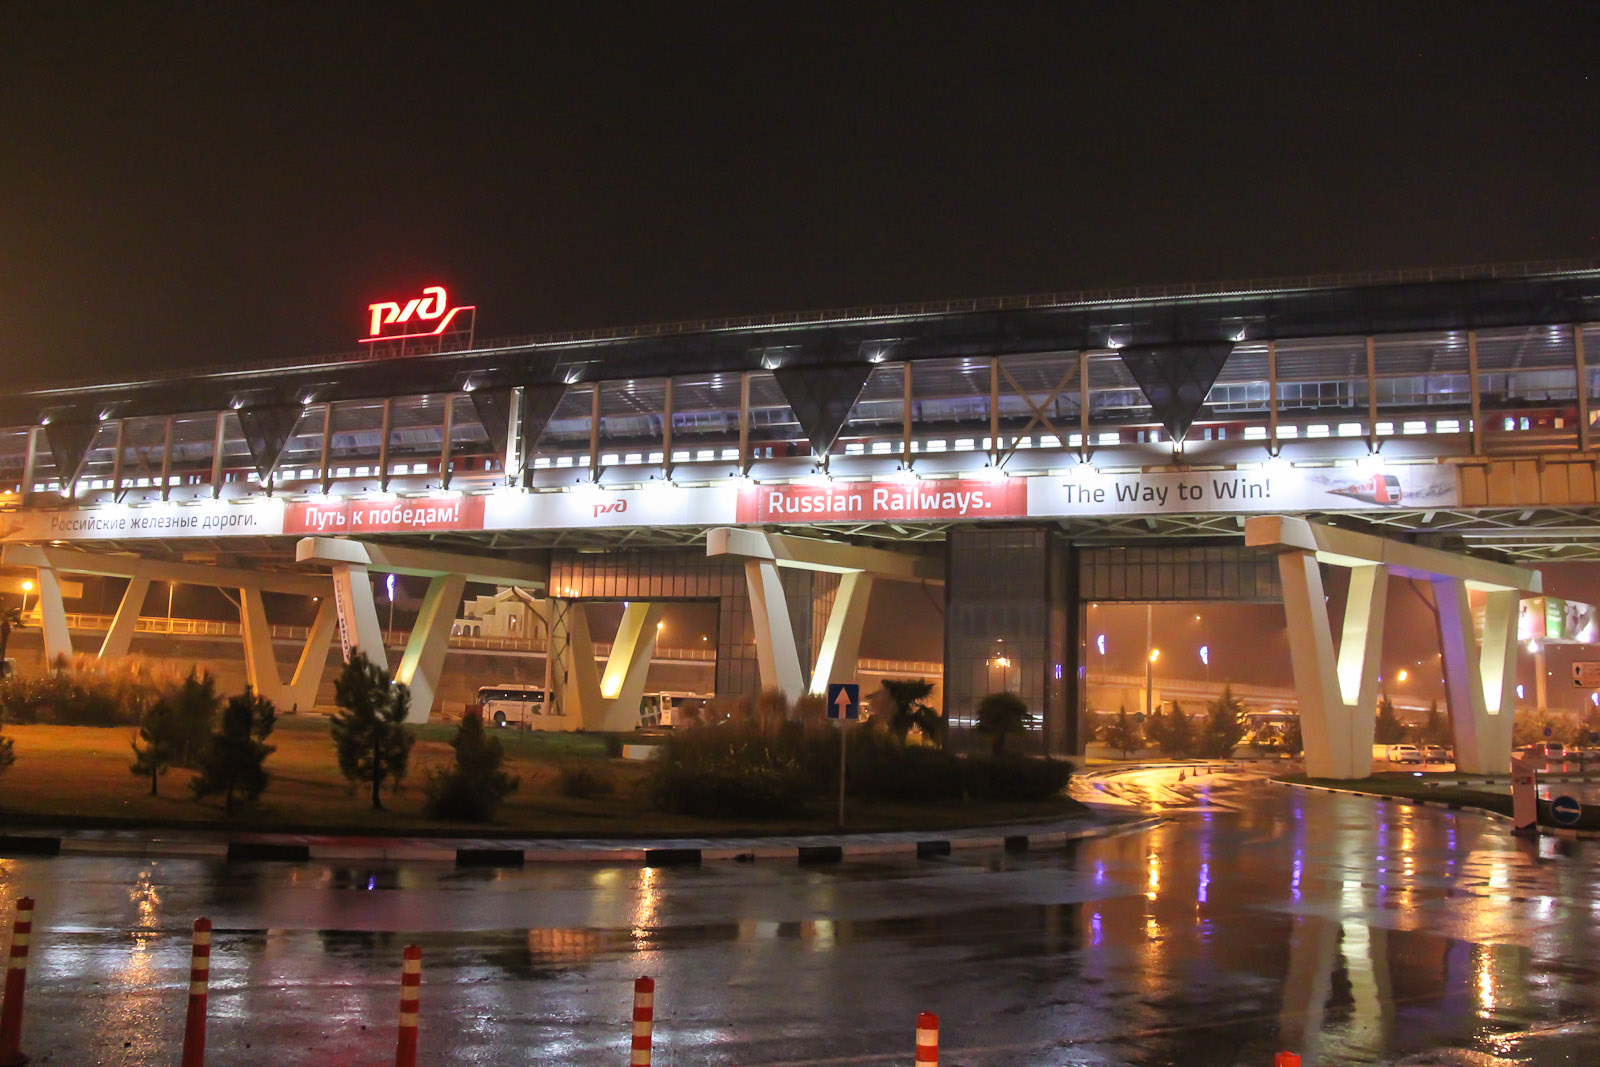 Sochi International airport